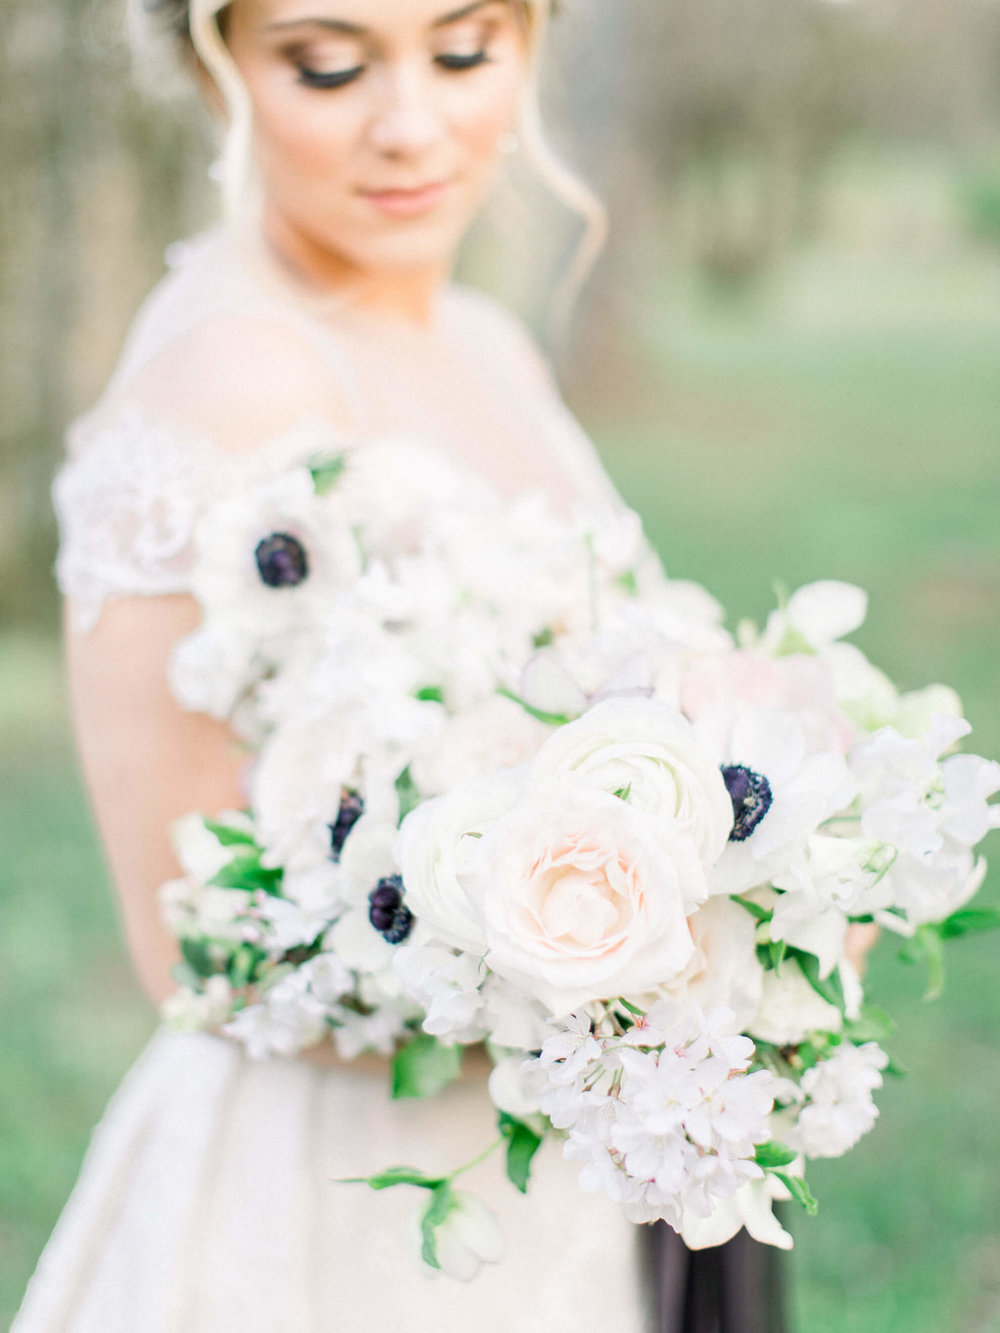 $400 - bridal bouquetBridal bouquet with premium blooms and no greenery.Finishes: Three sets of 4in/4yd Silk & Willow Silk Hand-Dyed Ribbon